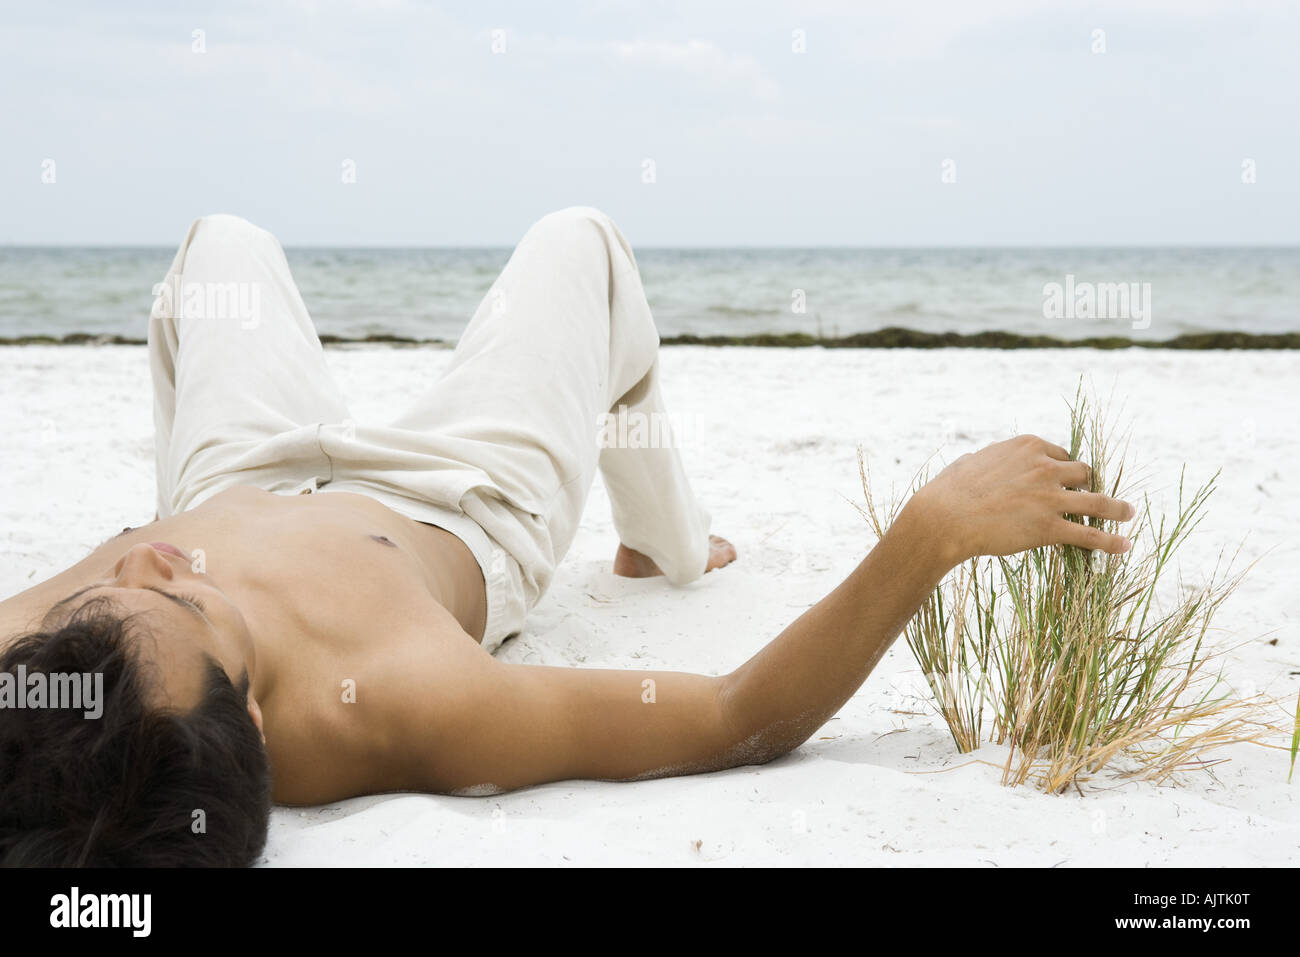 Young man lying on back on sand, touching dune grass, ocean in background - Stock Image